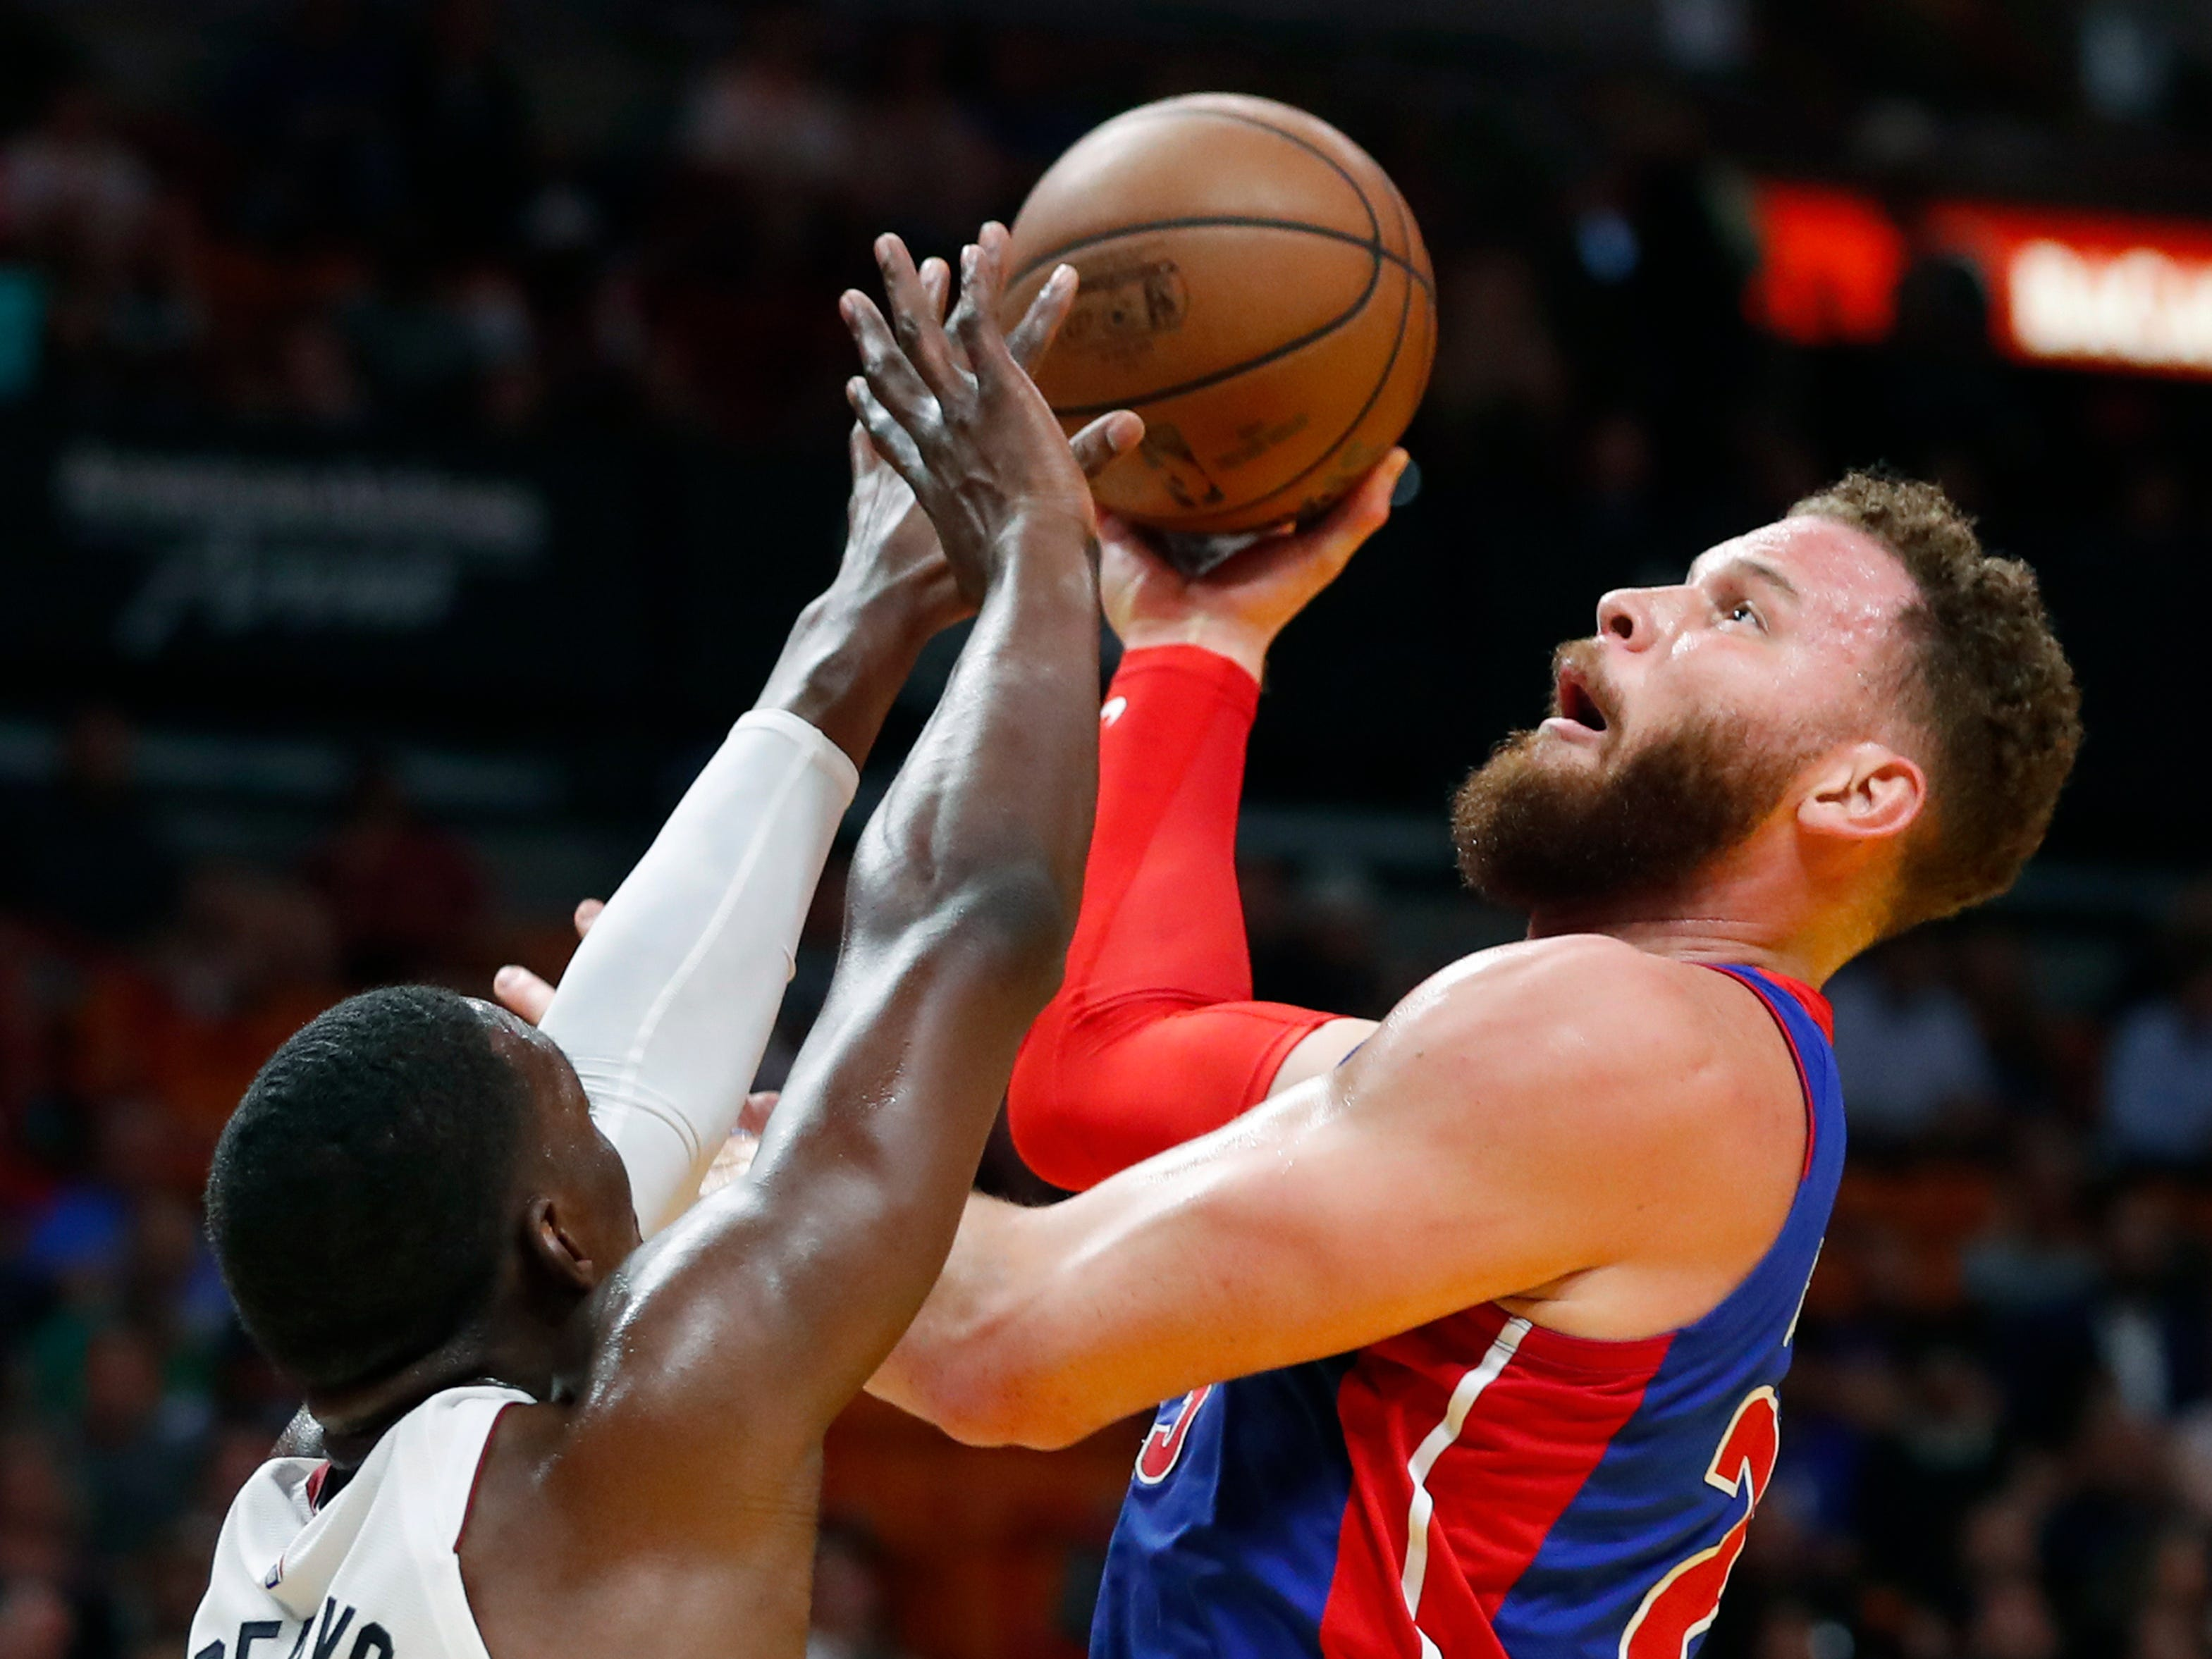 Detroit Pistons forward Blake Griffin (23) shoots against Miami Heat center Bam Adebayo (13) during the first half.